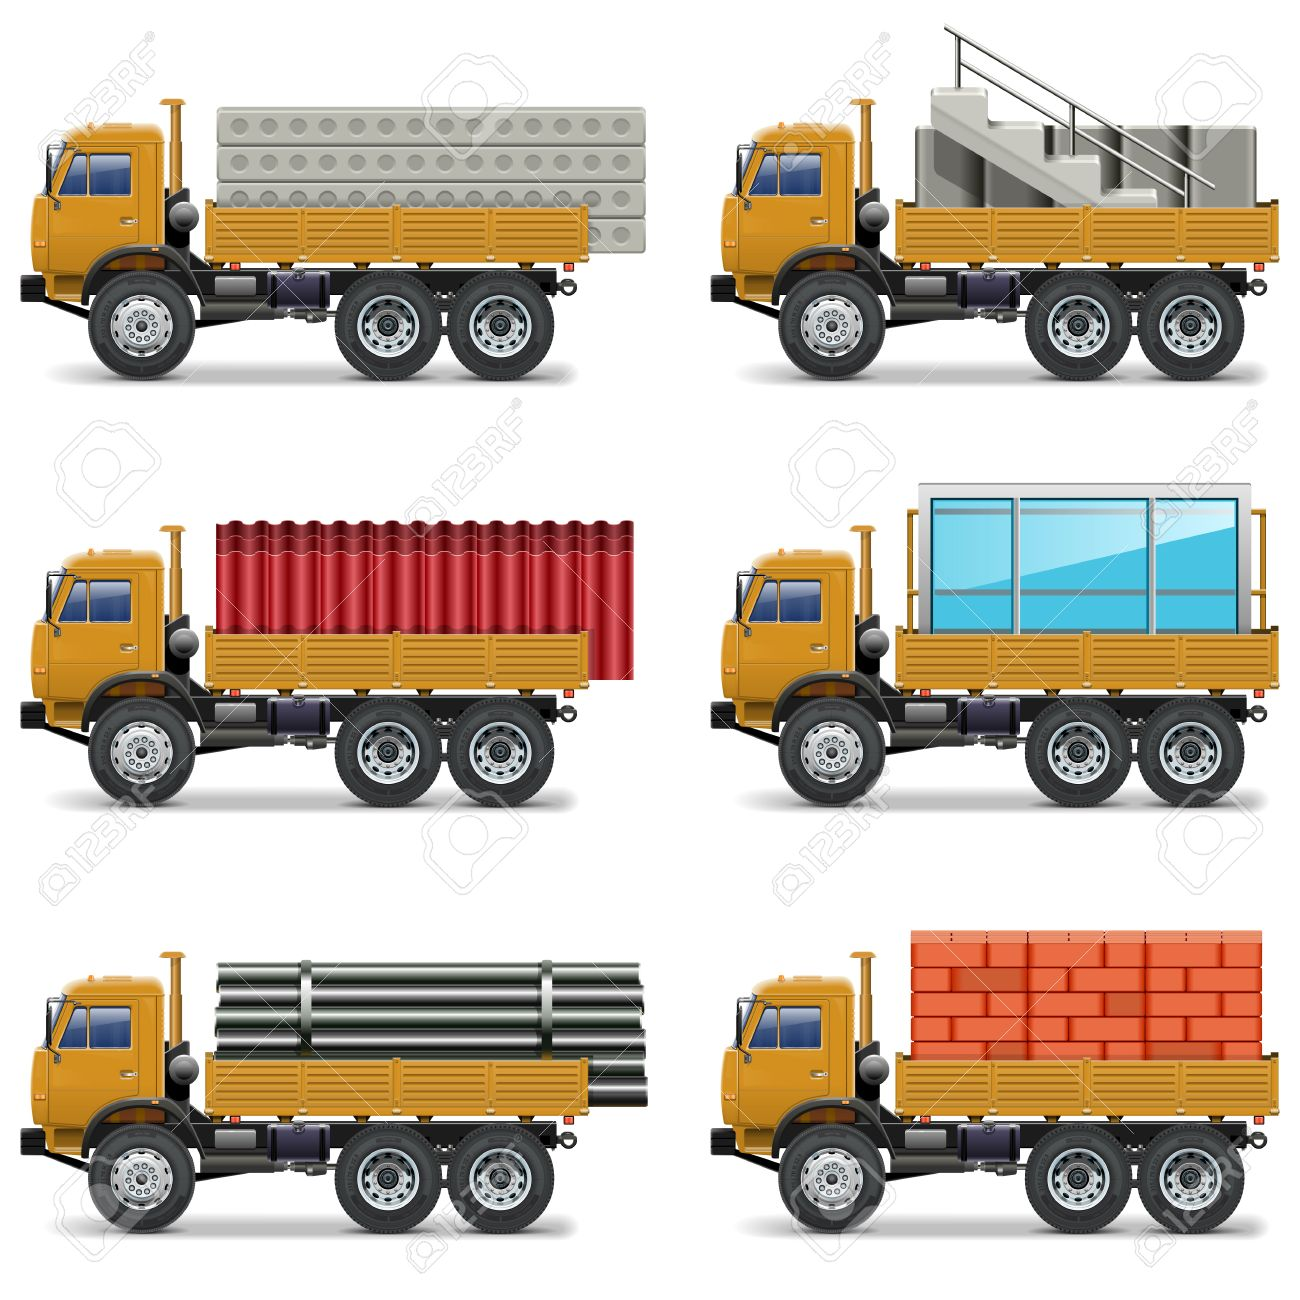 vector construction trucks royalty free cliparts vectors and